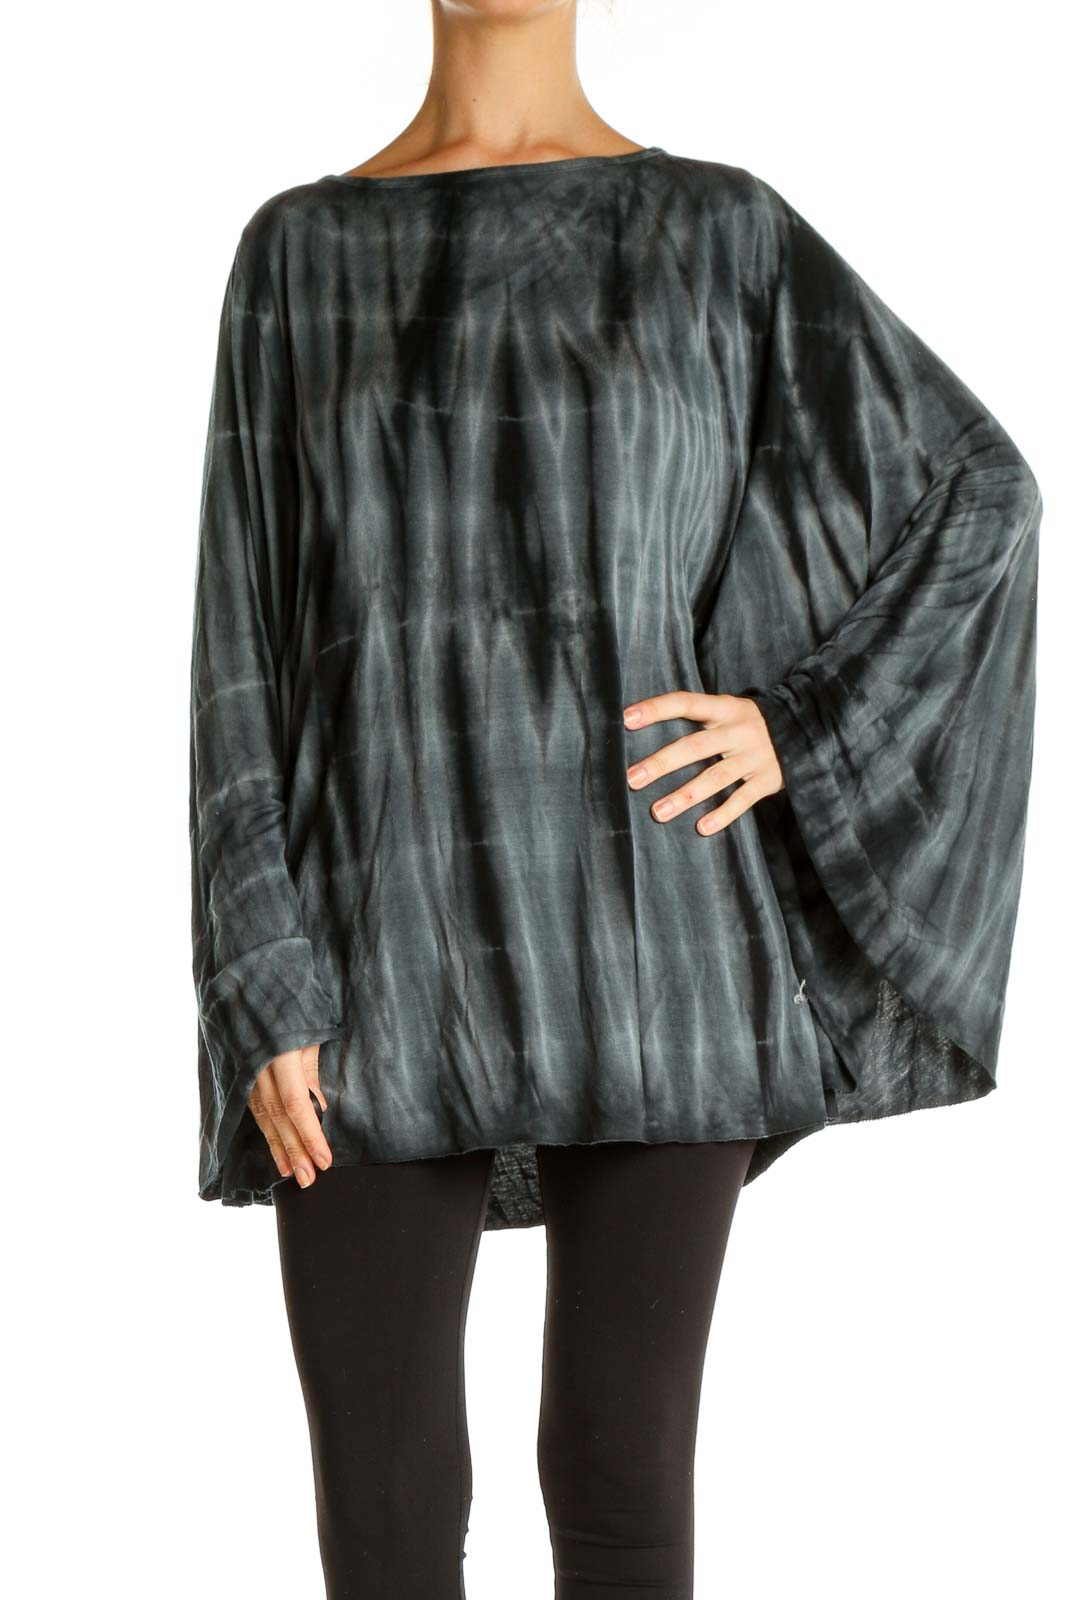 Black Tie And Dye Retro Blouse Front